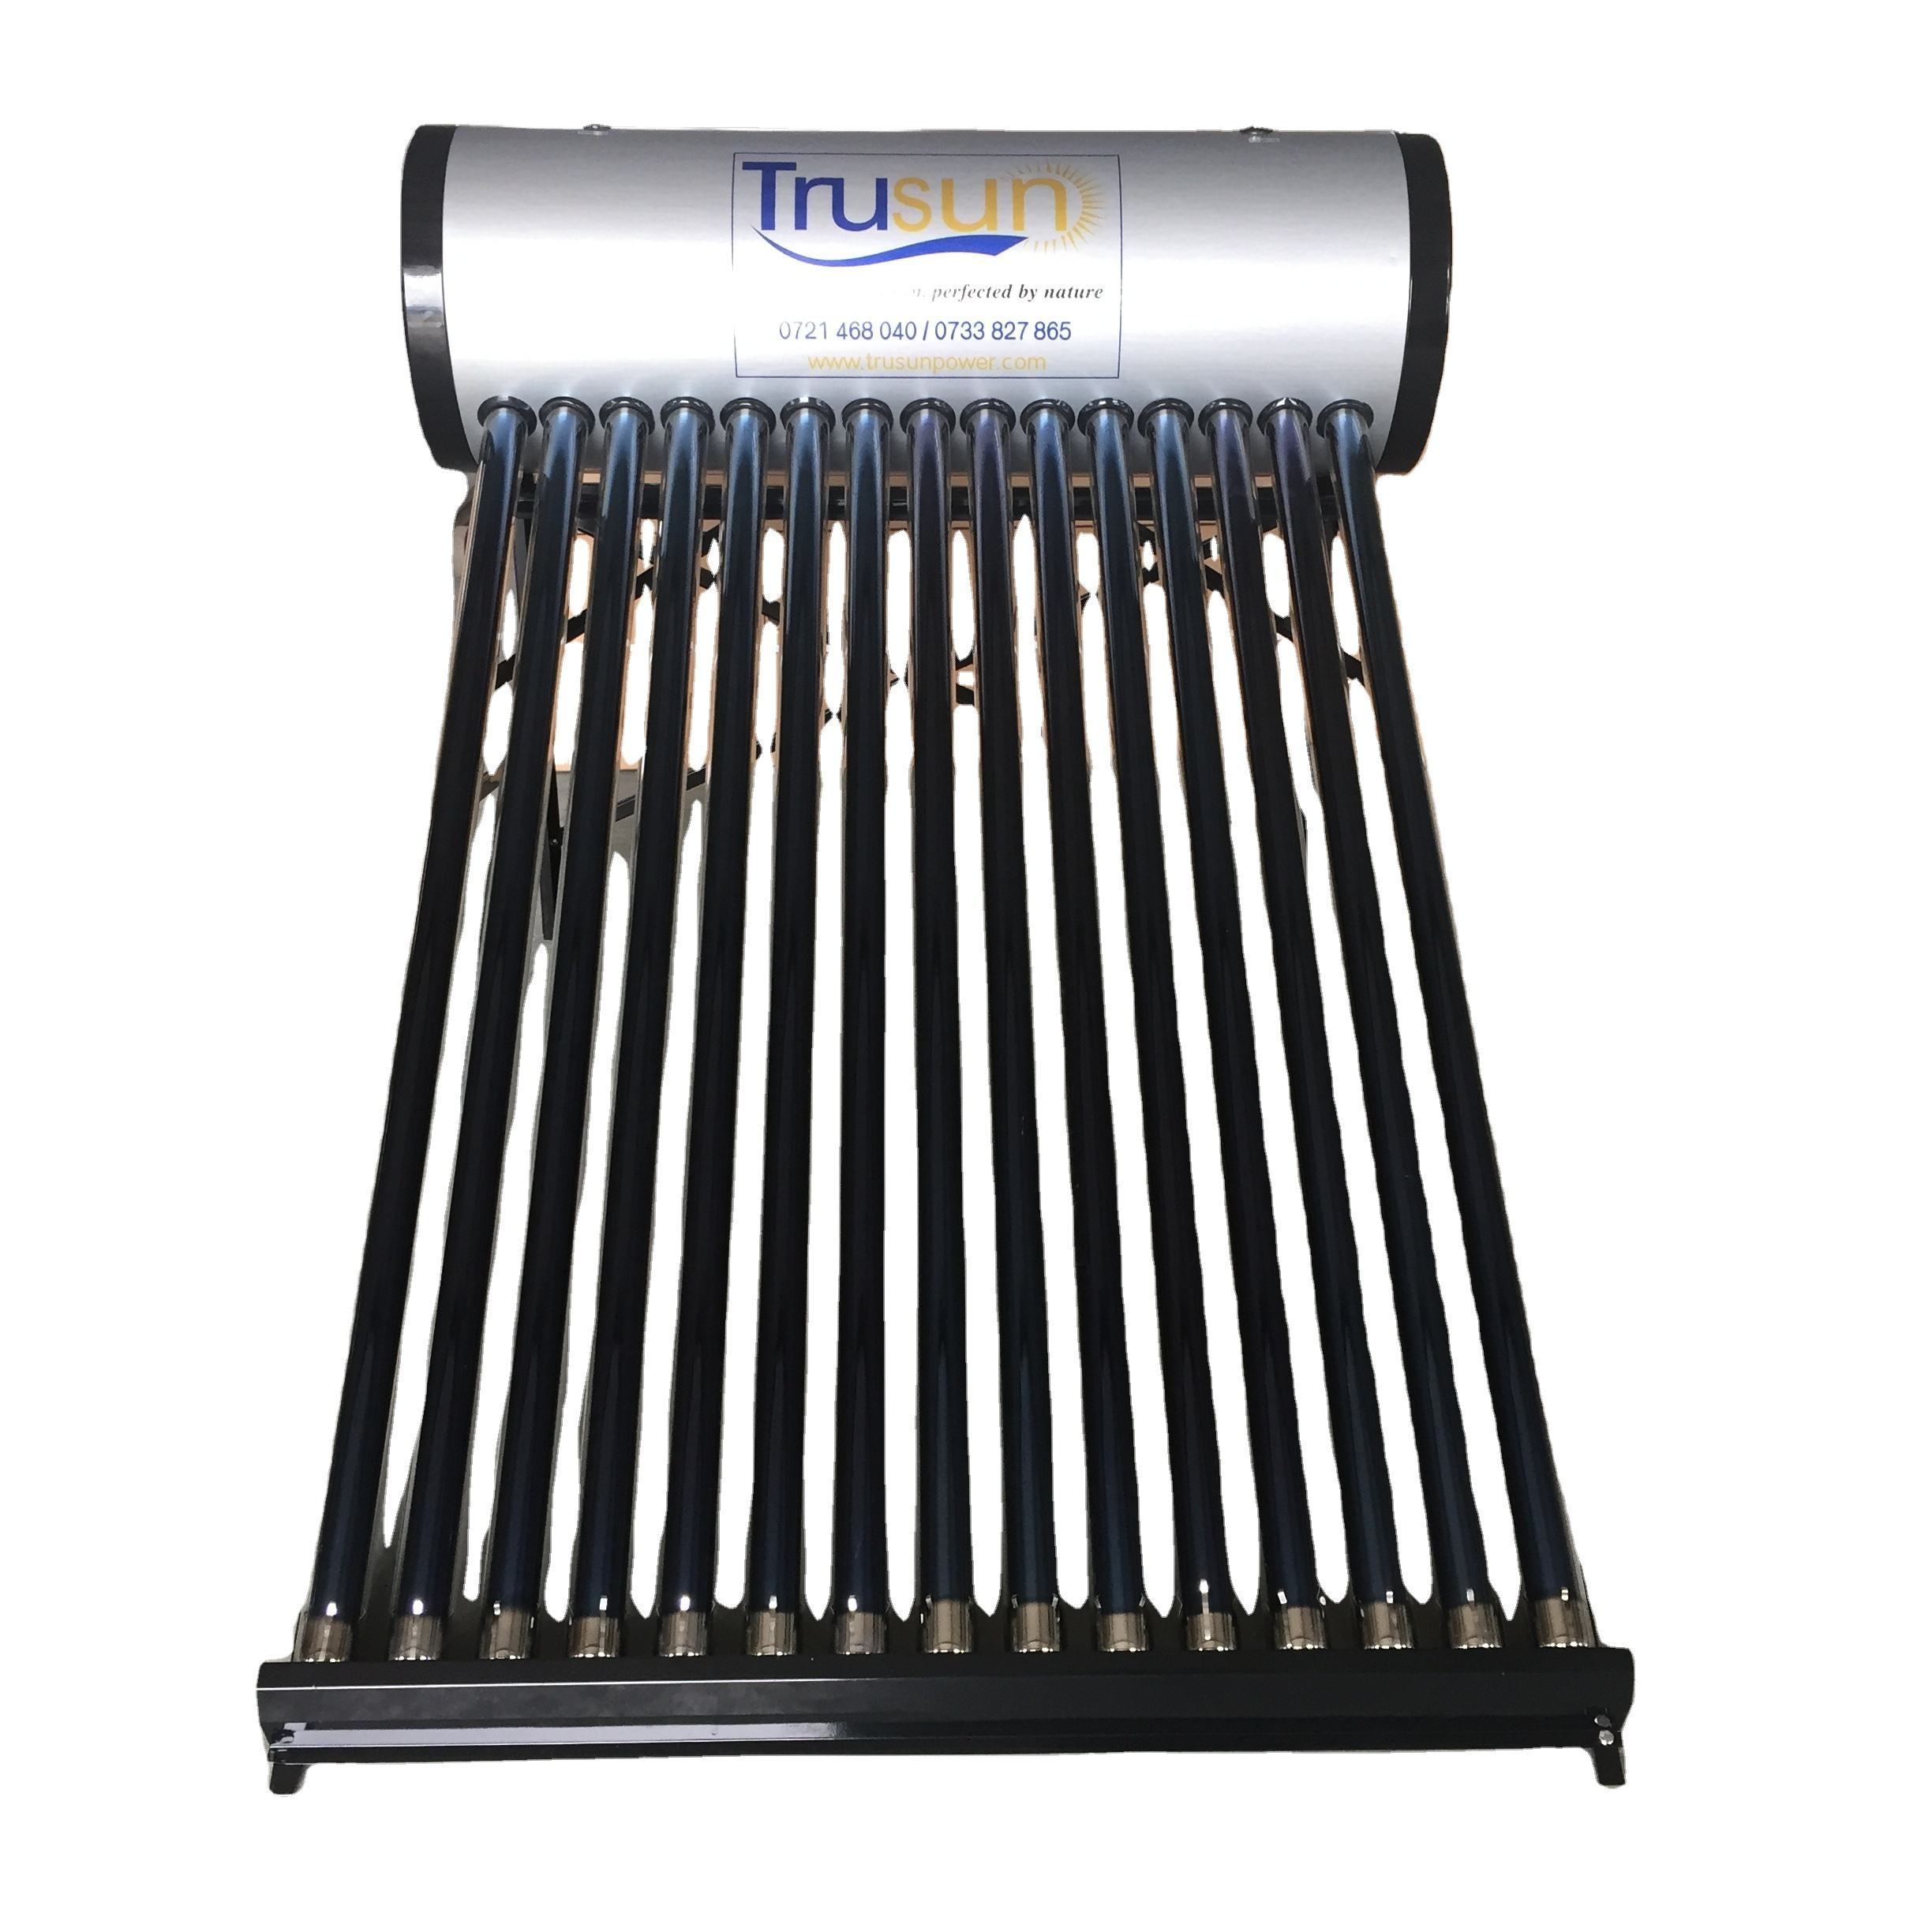 Hot water system non-pressurized solar geyser water heater with stainless steel